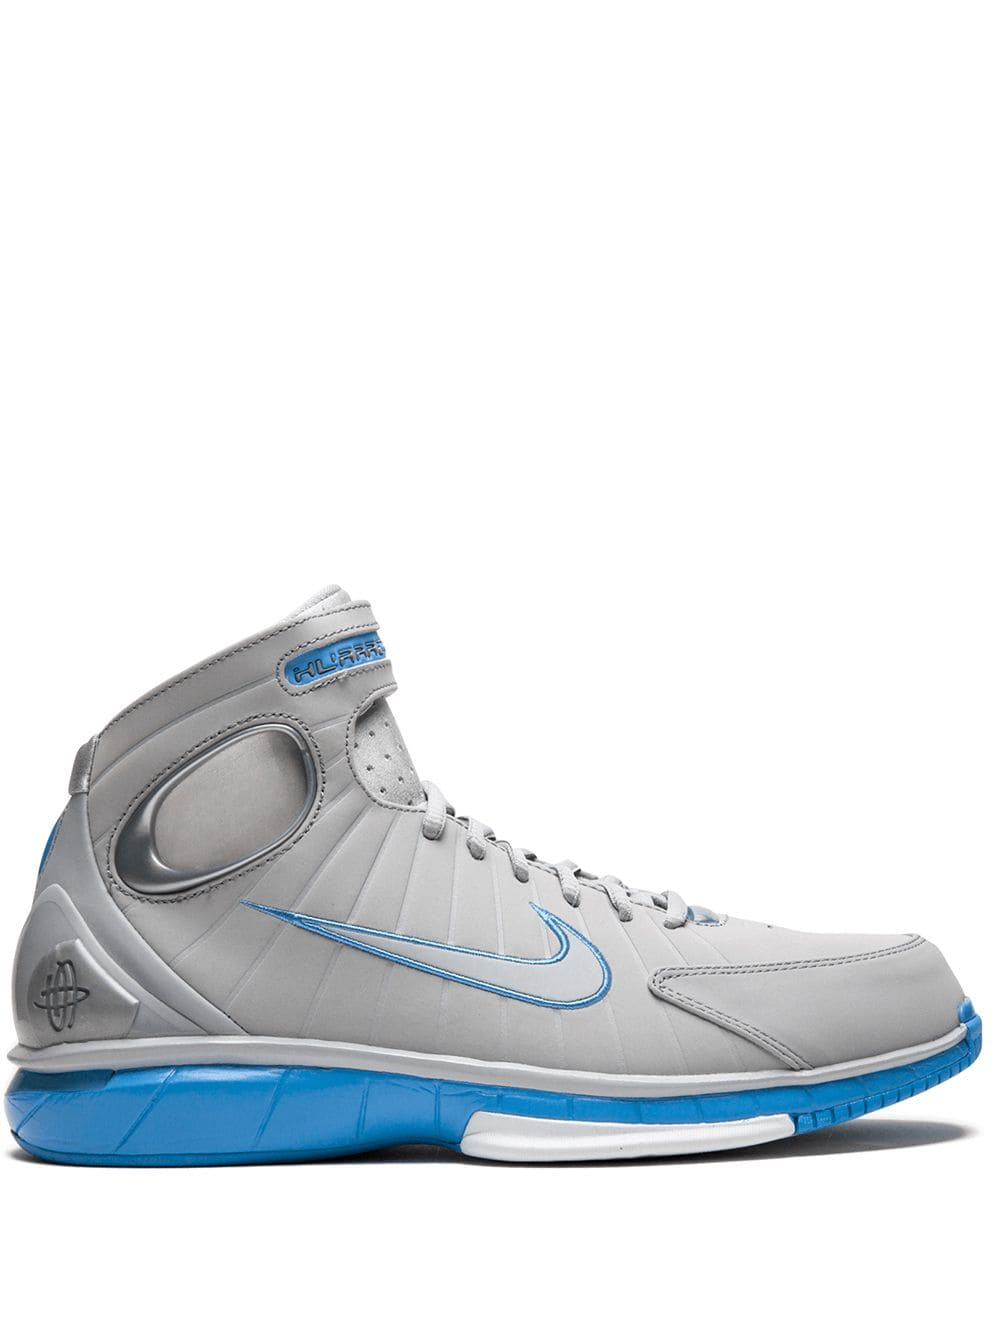 purchase cheap c481f 974a0 Nike Air Zoom Huarache 2K4 sneakers - Grey | Products in ...